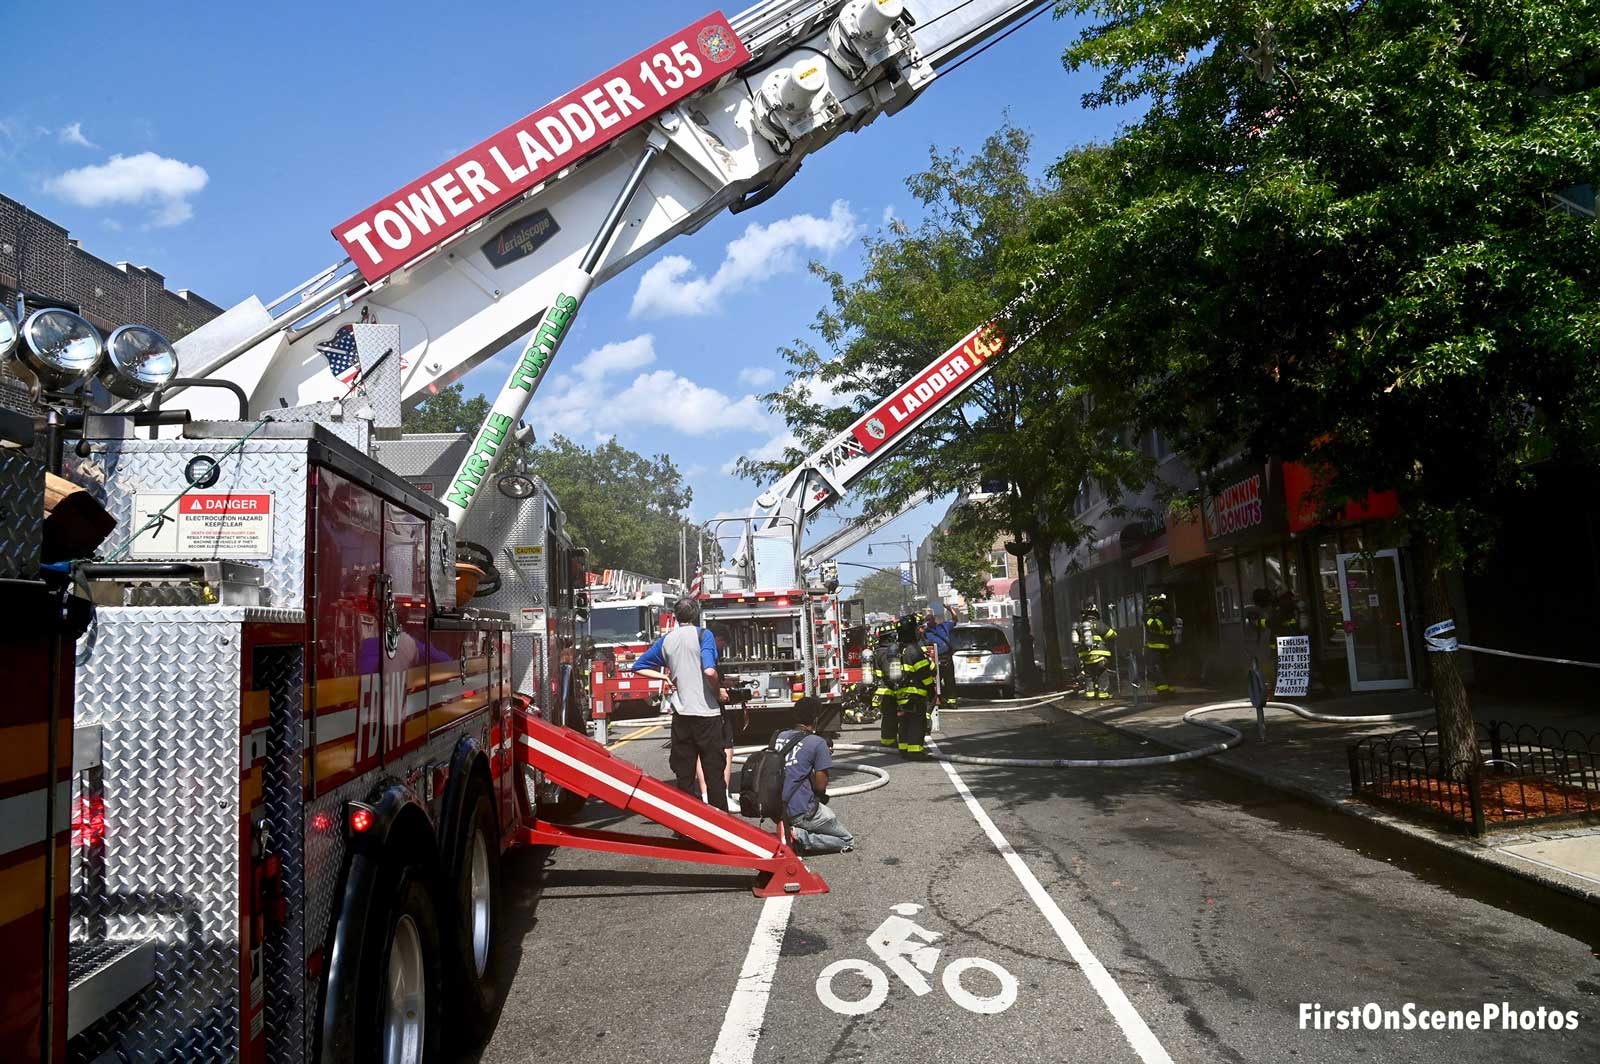 View of apparatus lineup at the fire